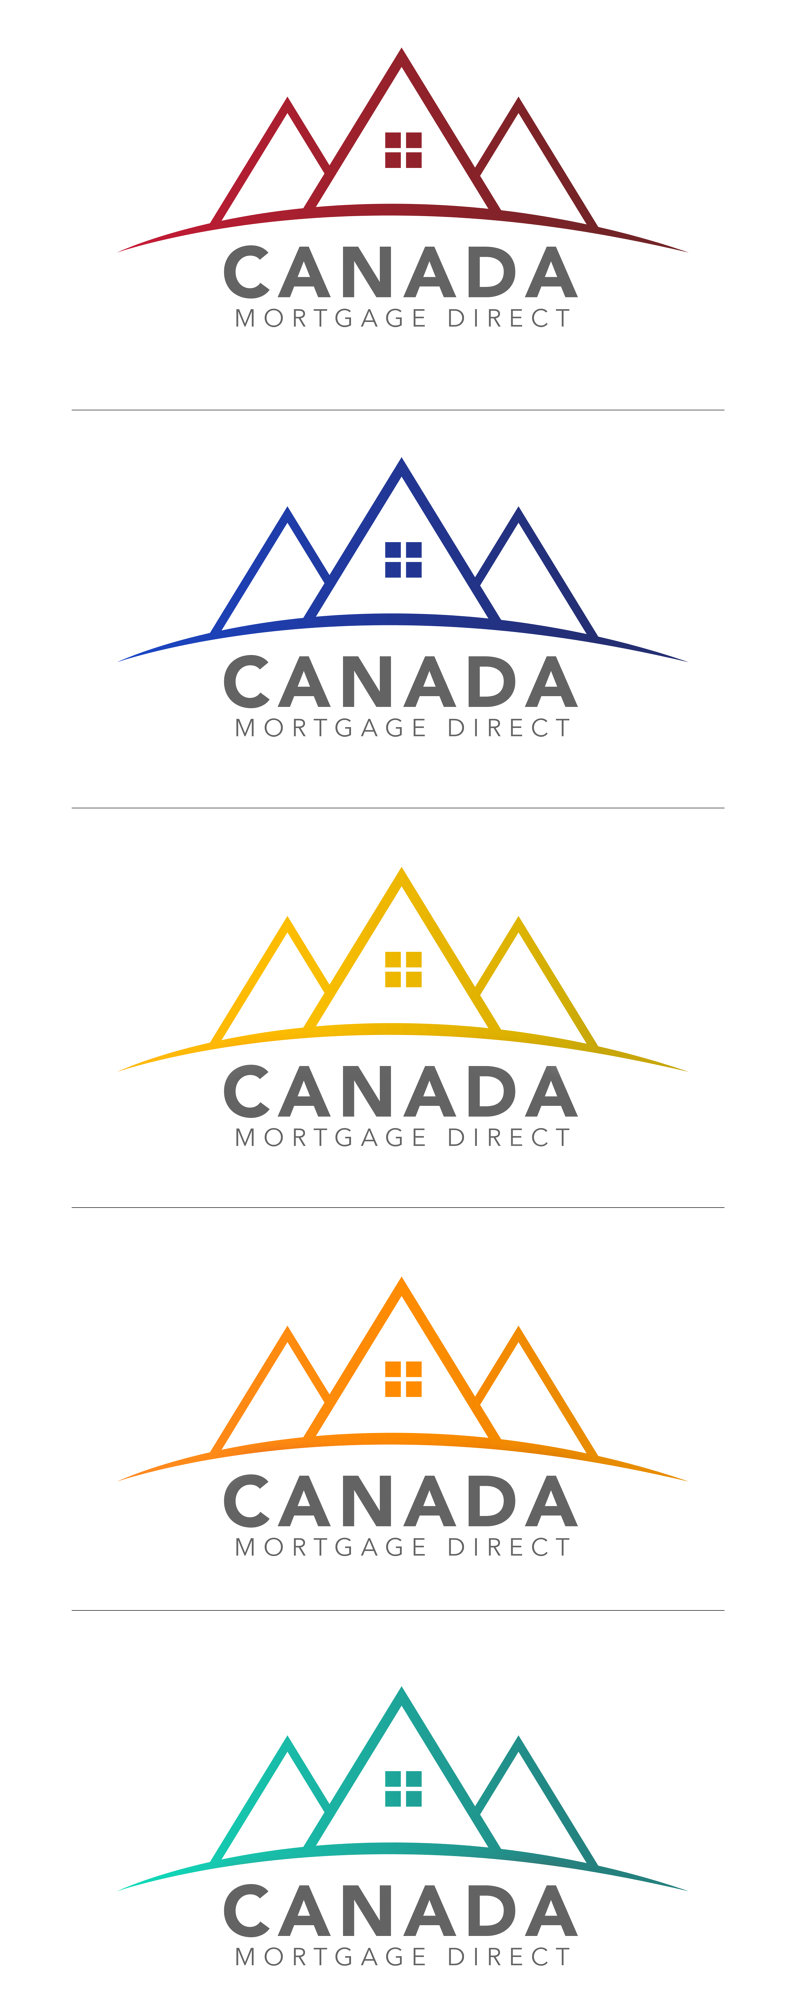 شعار Canada Mortgage Direct